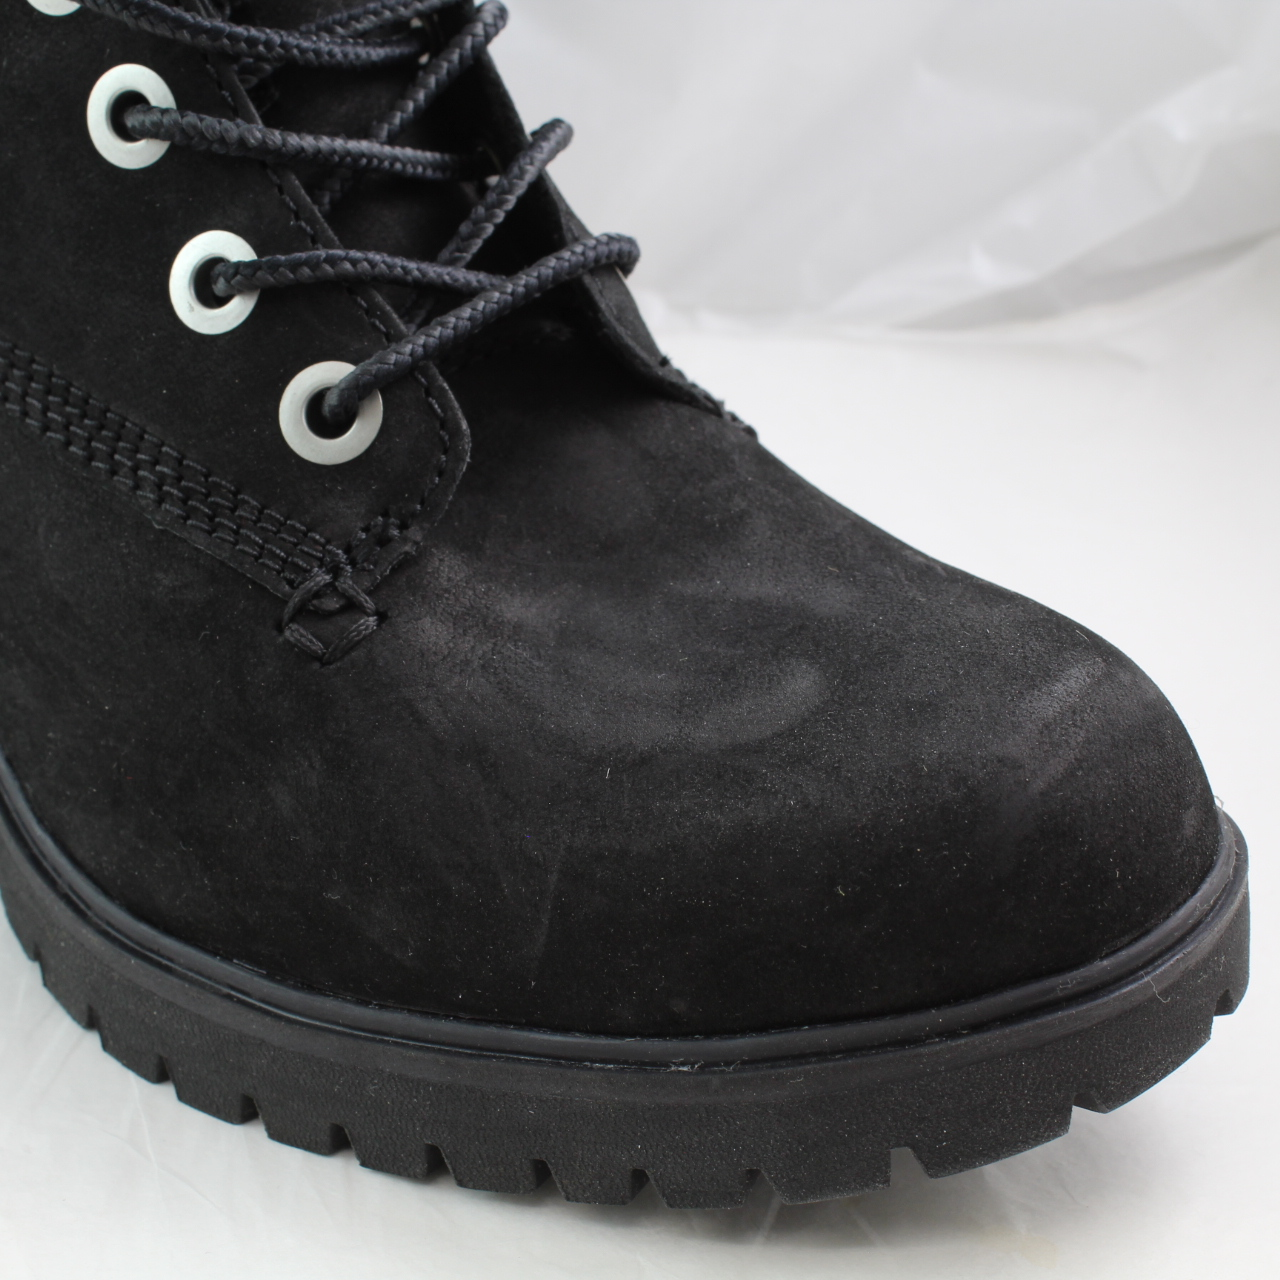 ee209cf82e5 Womens Timberland Black Leather Lace-Up Ankle Boots Size UK 4 *Ex ...